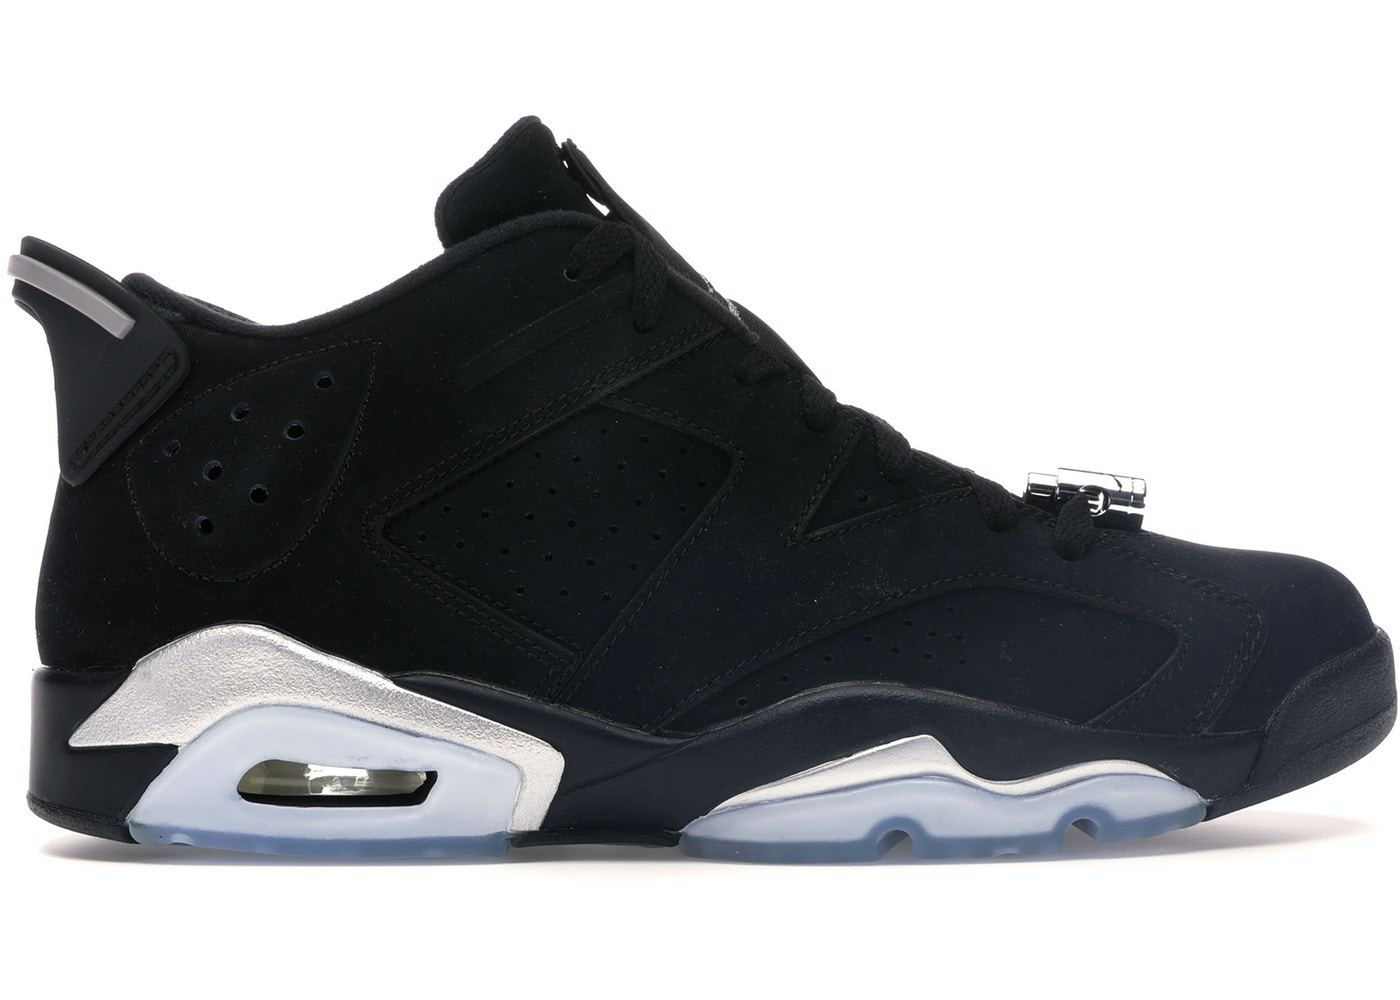 quality design fe25e 5f360 Jordan 6 Retro Low Chrome (2015)